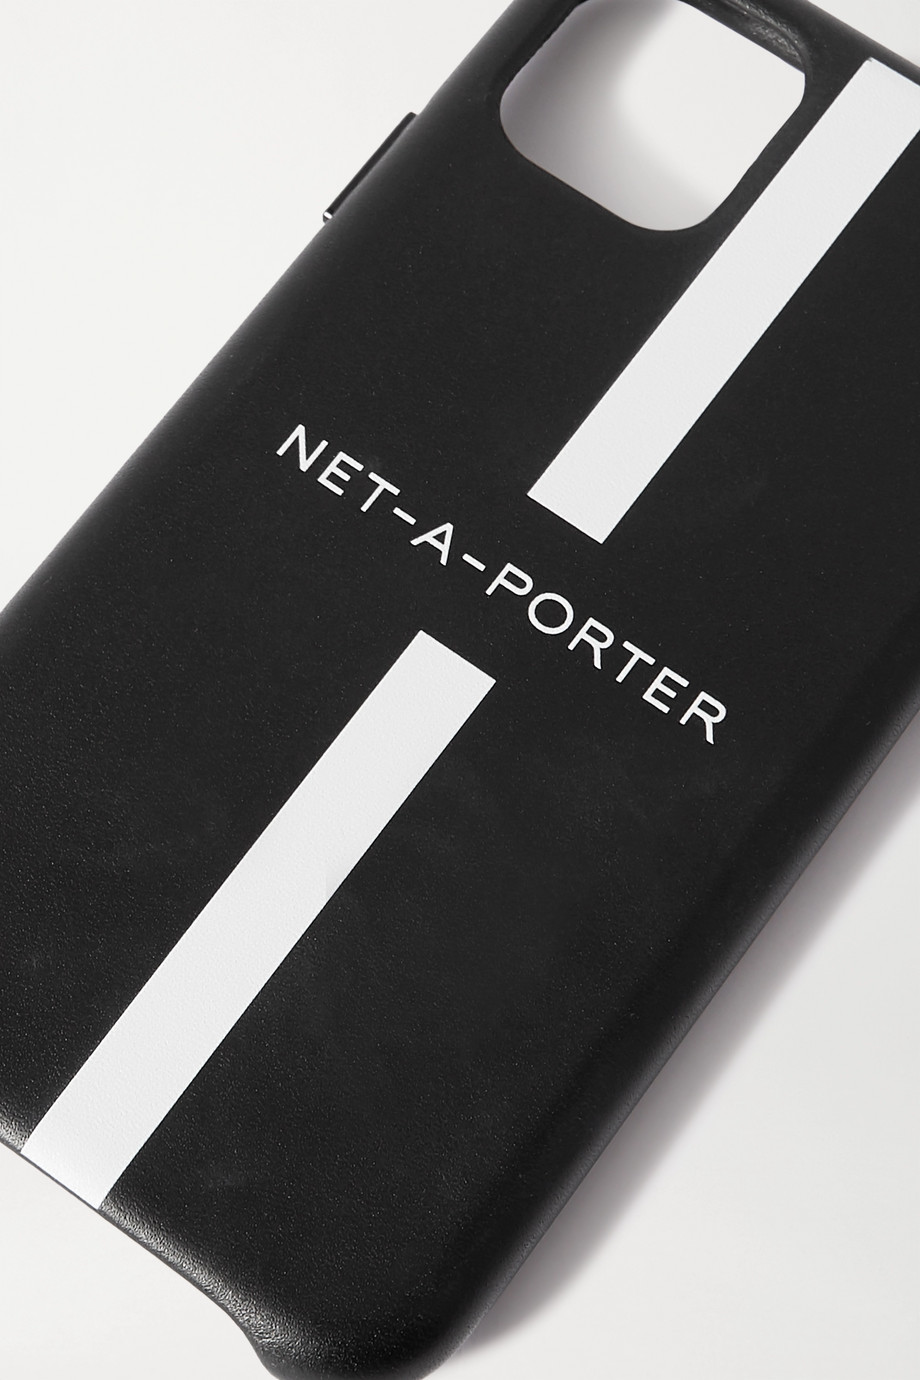 NET-A-PORTER + The Daily Edited printed leather iPhone 11 Pro case